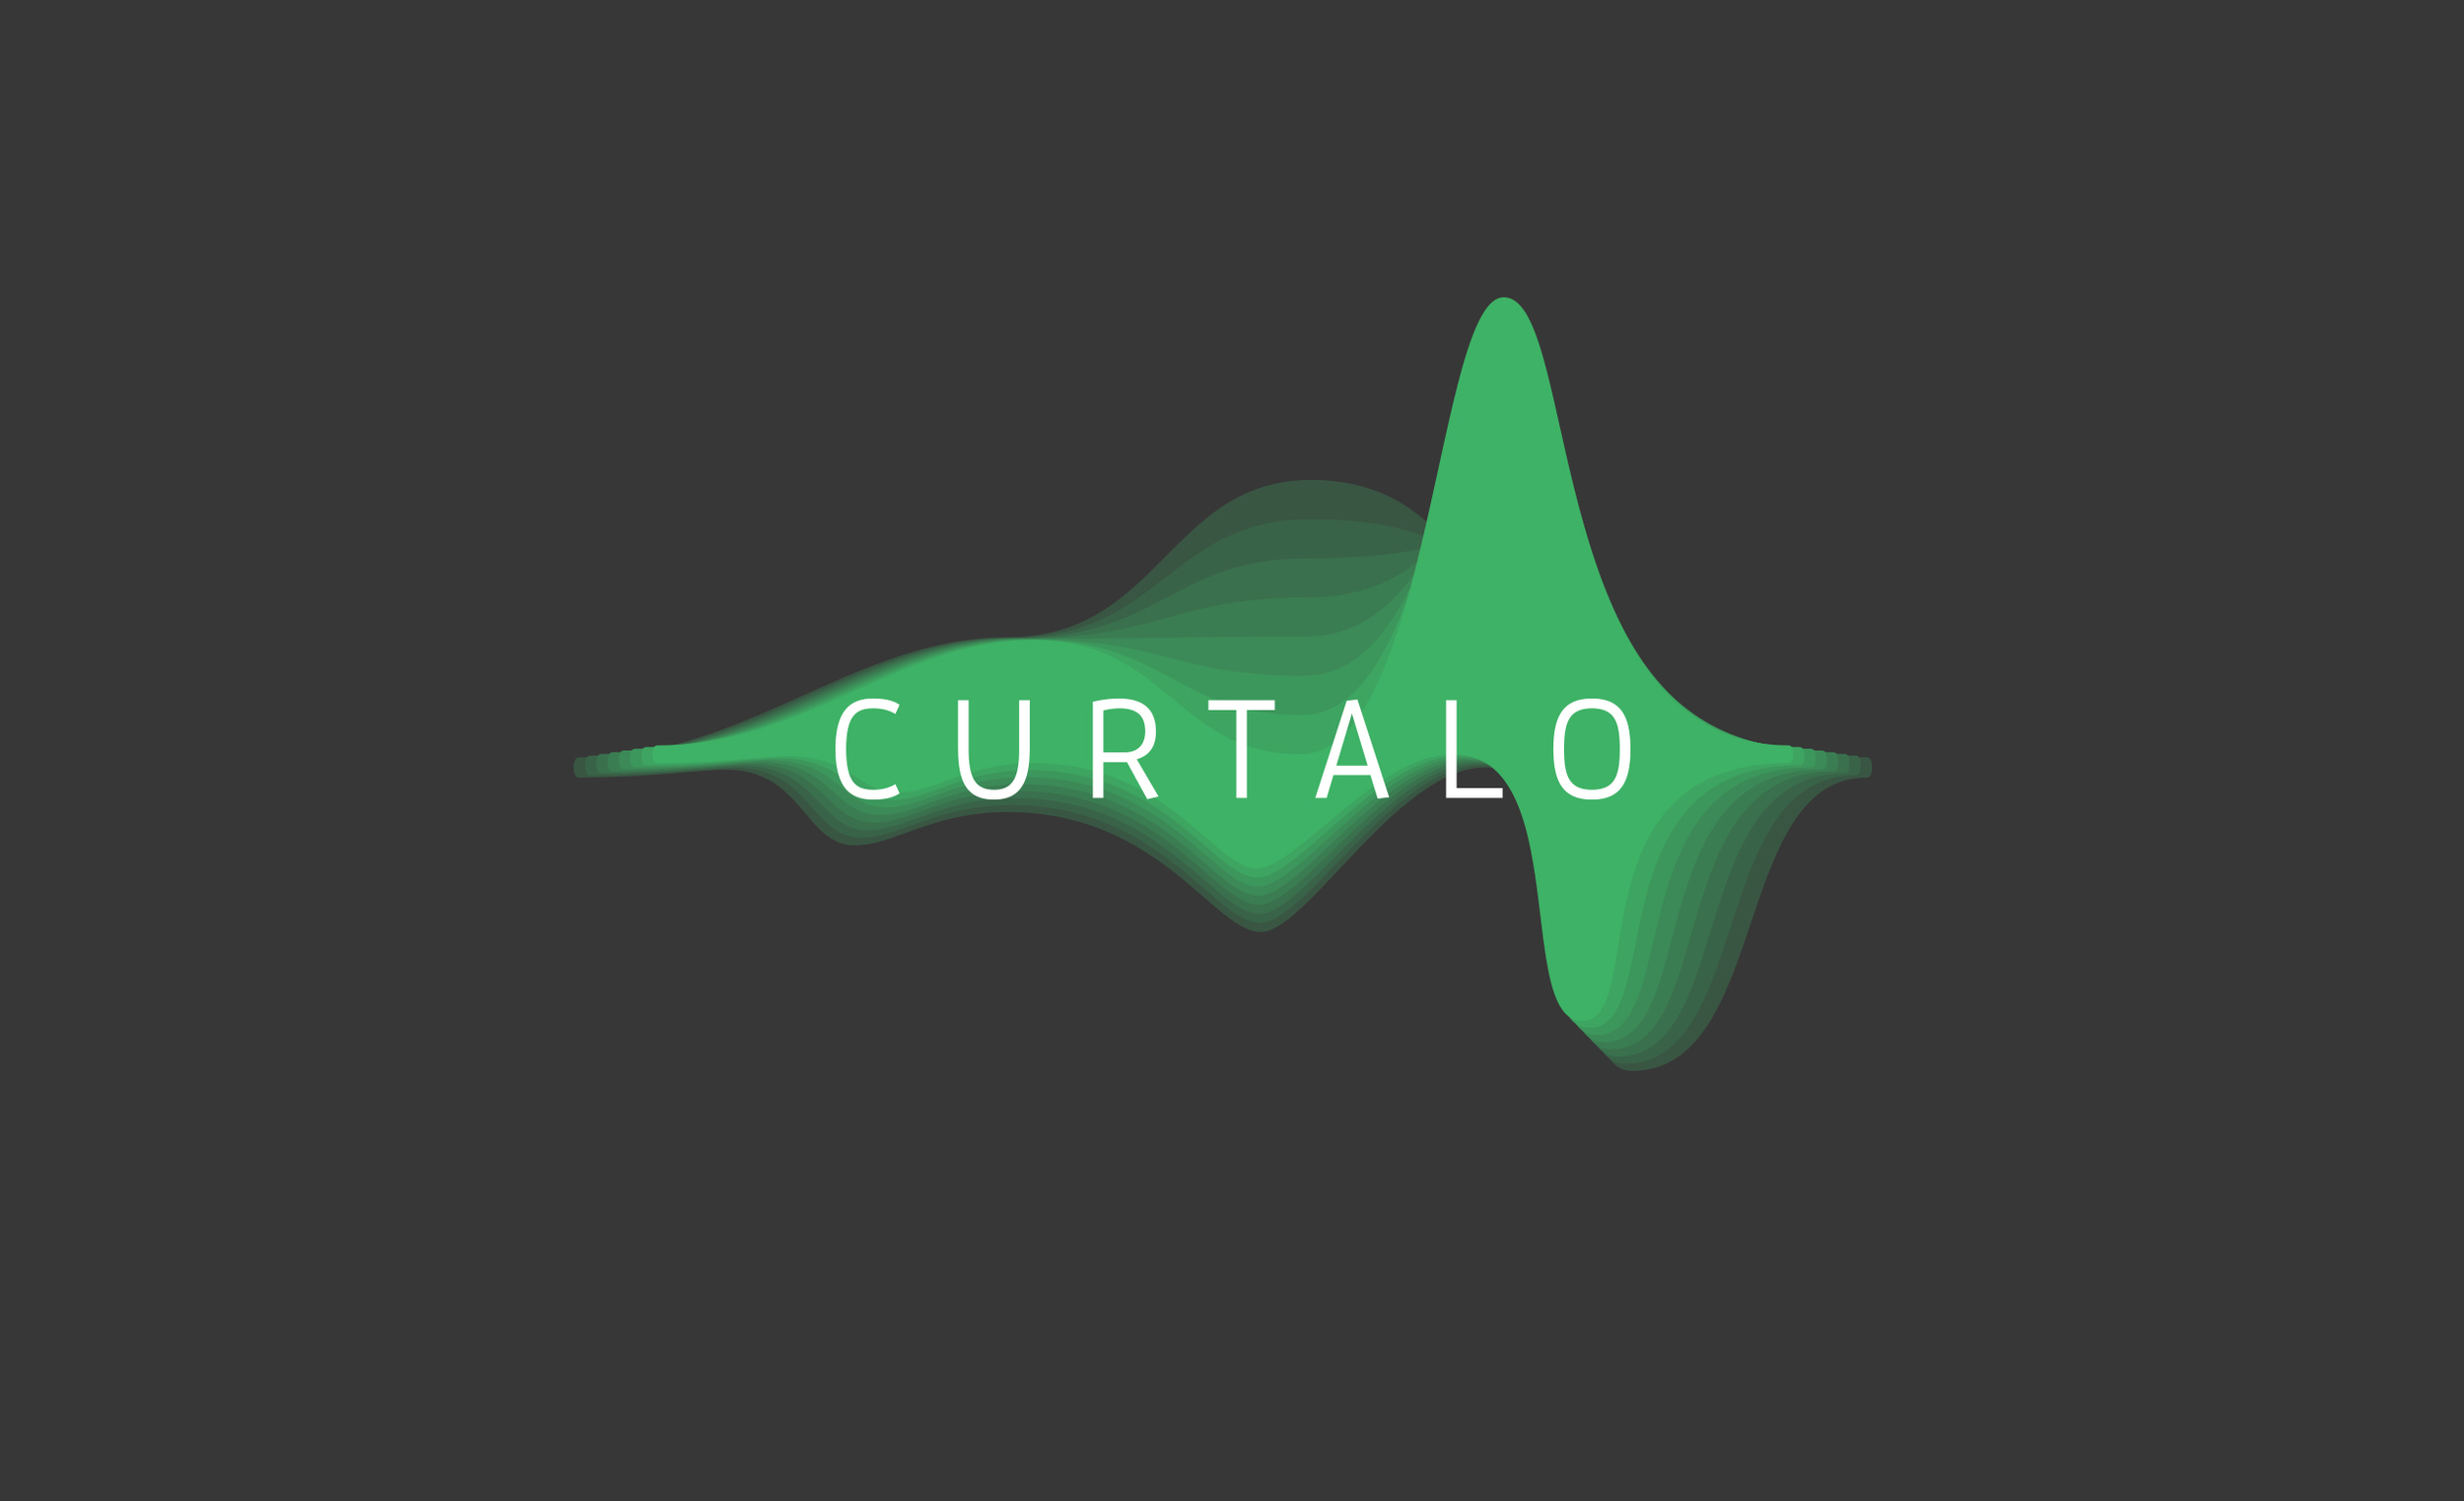 curtalo-animation_04.jpg